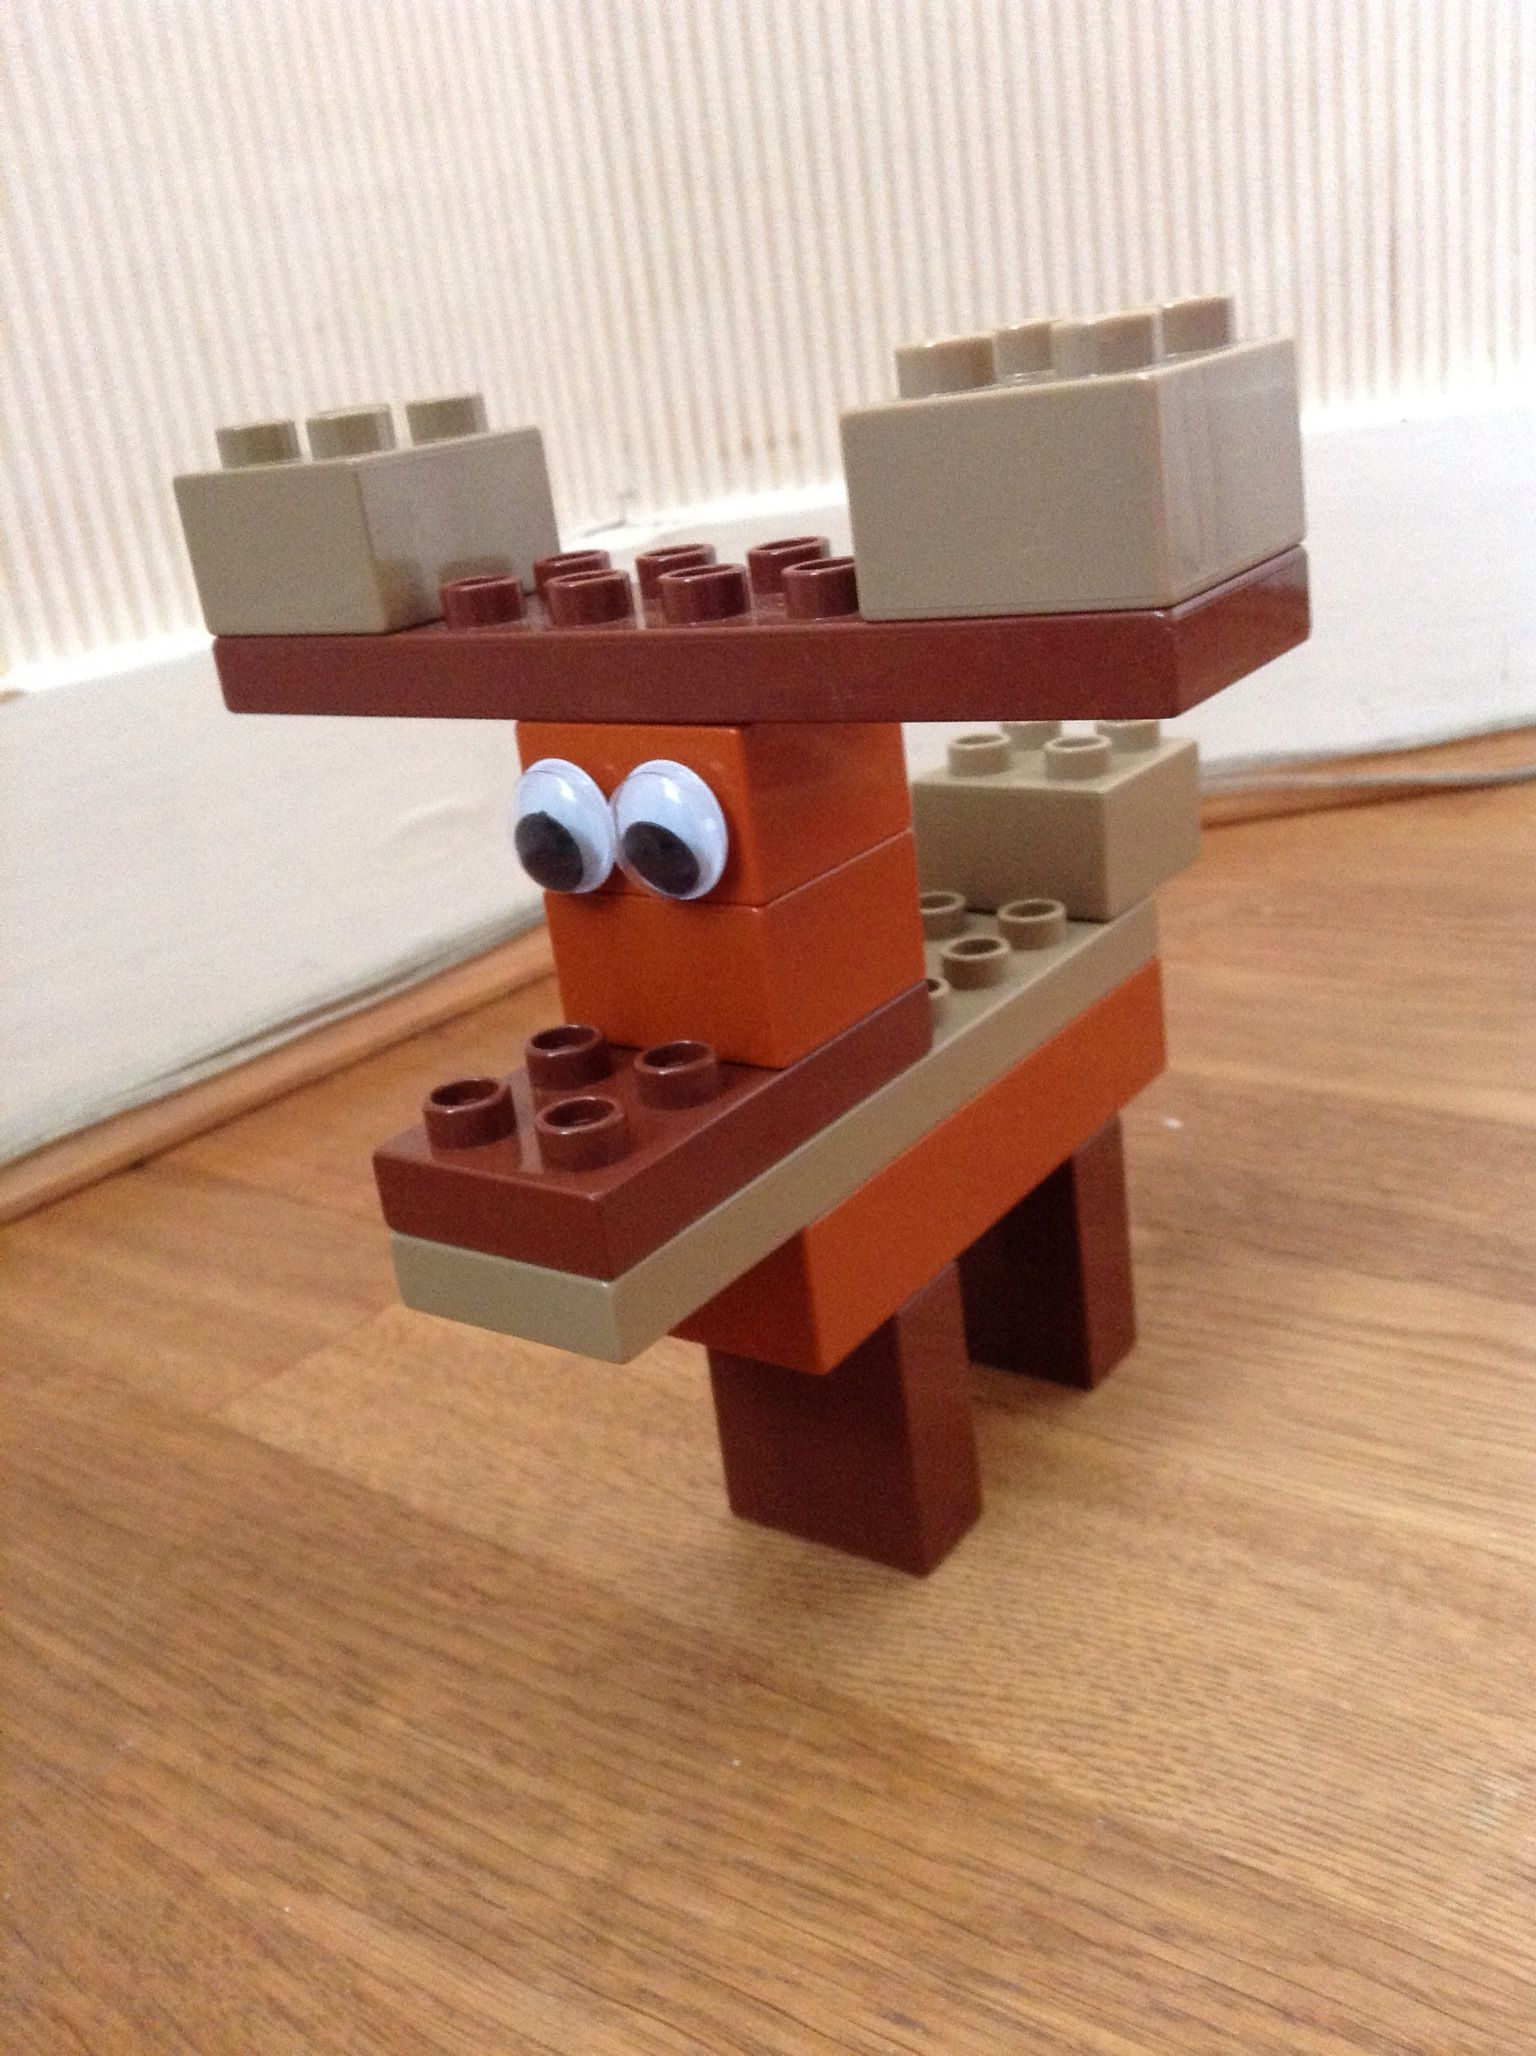 Duplo reindeer with googly eyes